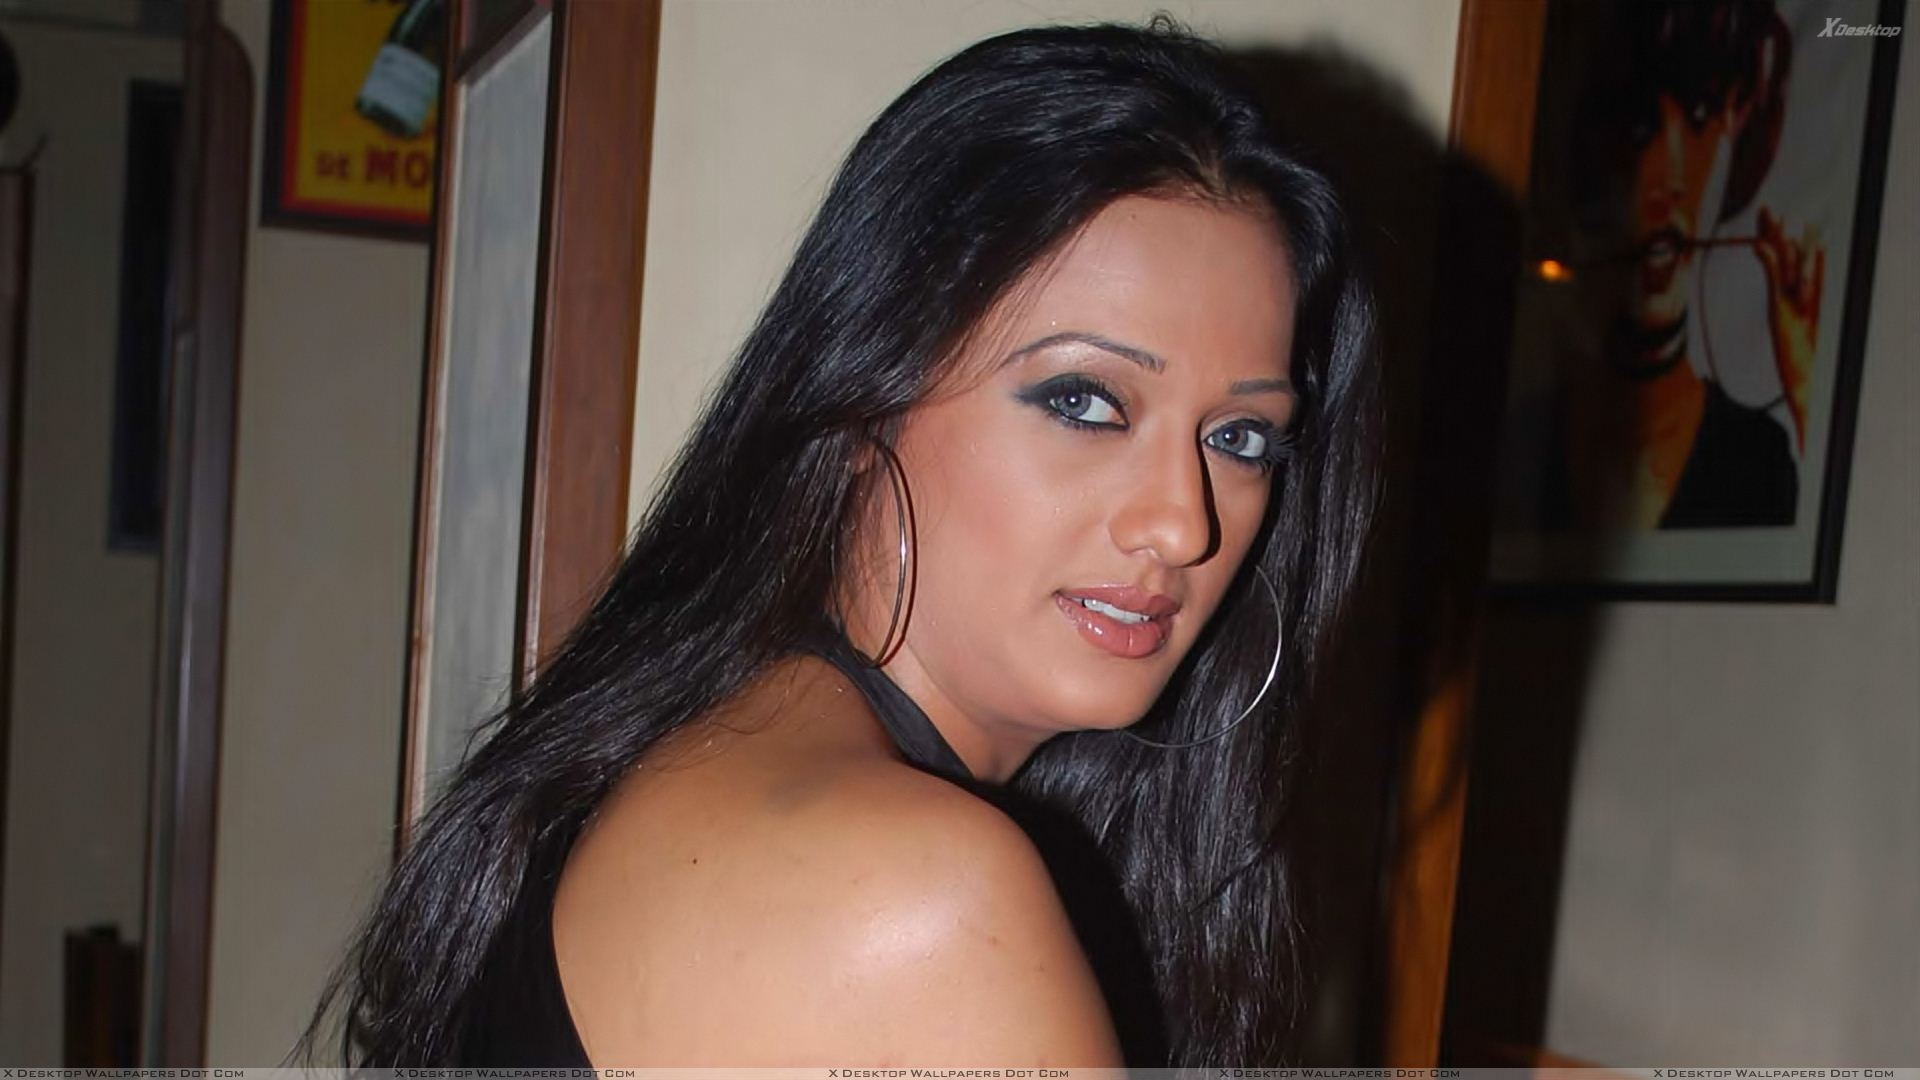 brinda parekh facebookbrinda parekh instagram, brinda parekh, brinda parekh hot, brinda parekh hot pics, brinda parekh hamara photos, brinda parekh wiki, brinda parekh facebook, brinda parekh bikini, brinda parekh biography, brinda parekh contact number, brinda parekh feet, brinda parekh ragalahari, brinda parekh husband, brinda parekh pictures